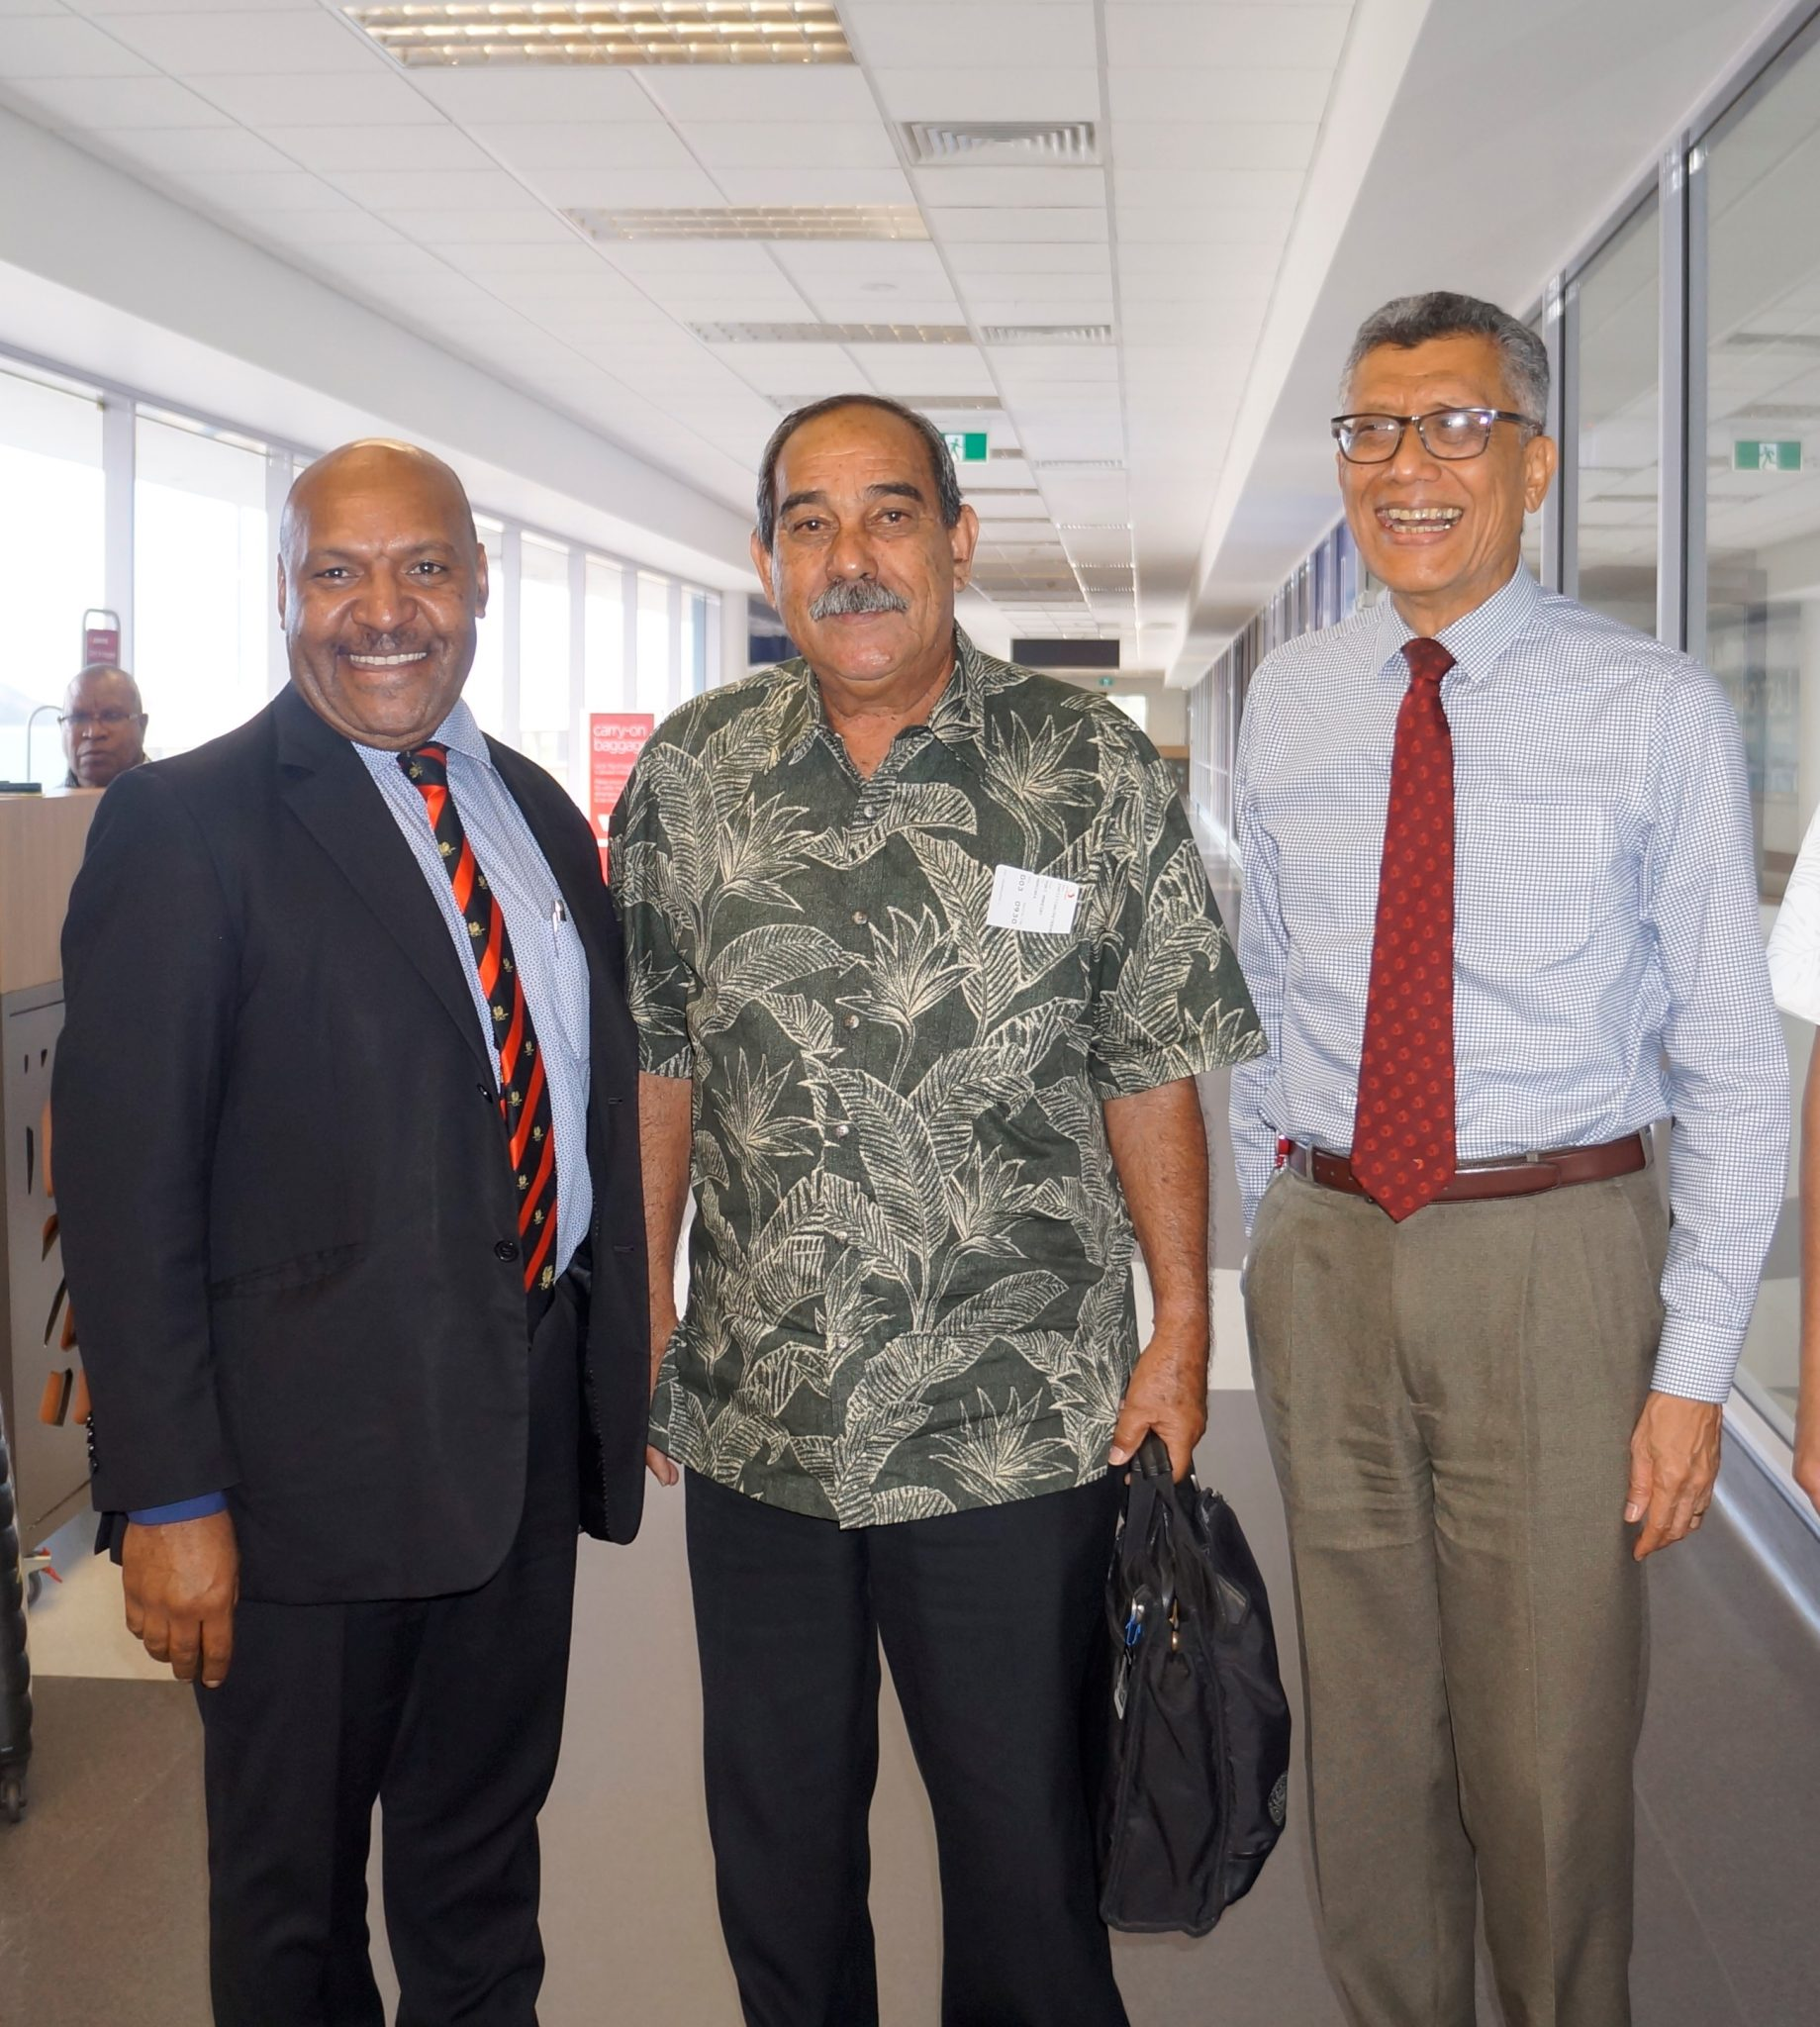 FSM President meets with Heads of Air Niugini & National Airports Corporation